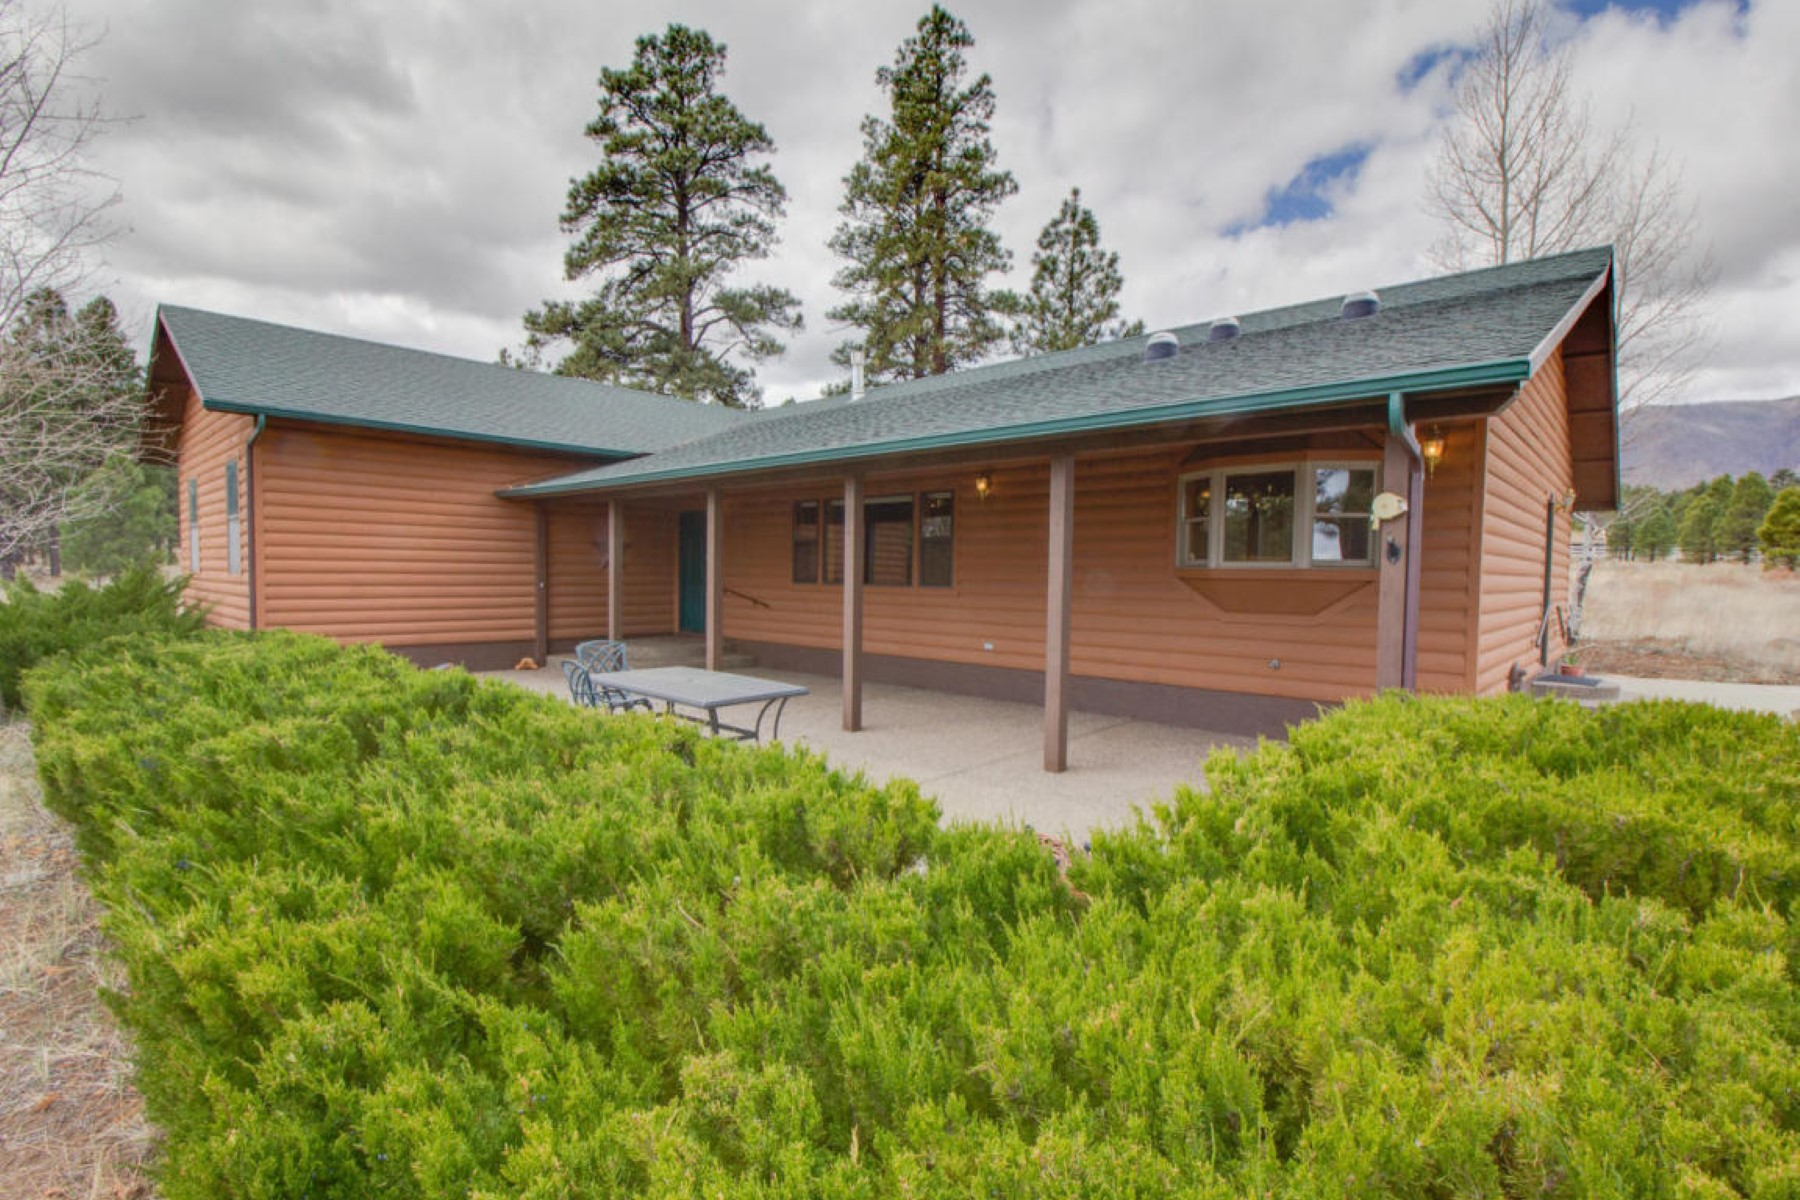 Single Family Home for Sale at Single level home boarding the national forest 10790 N Sage Rd Flagstaff, Arizona, 86004 United States